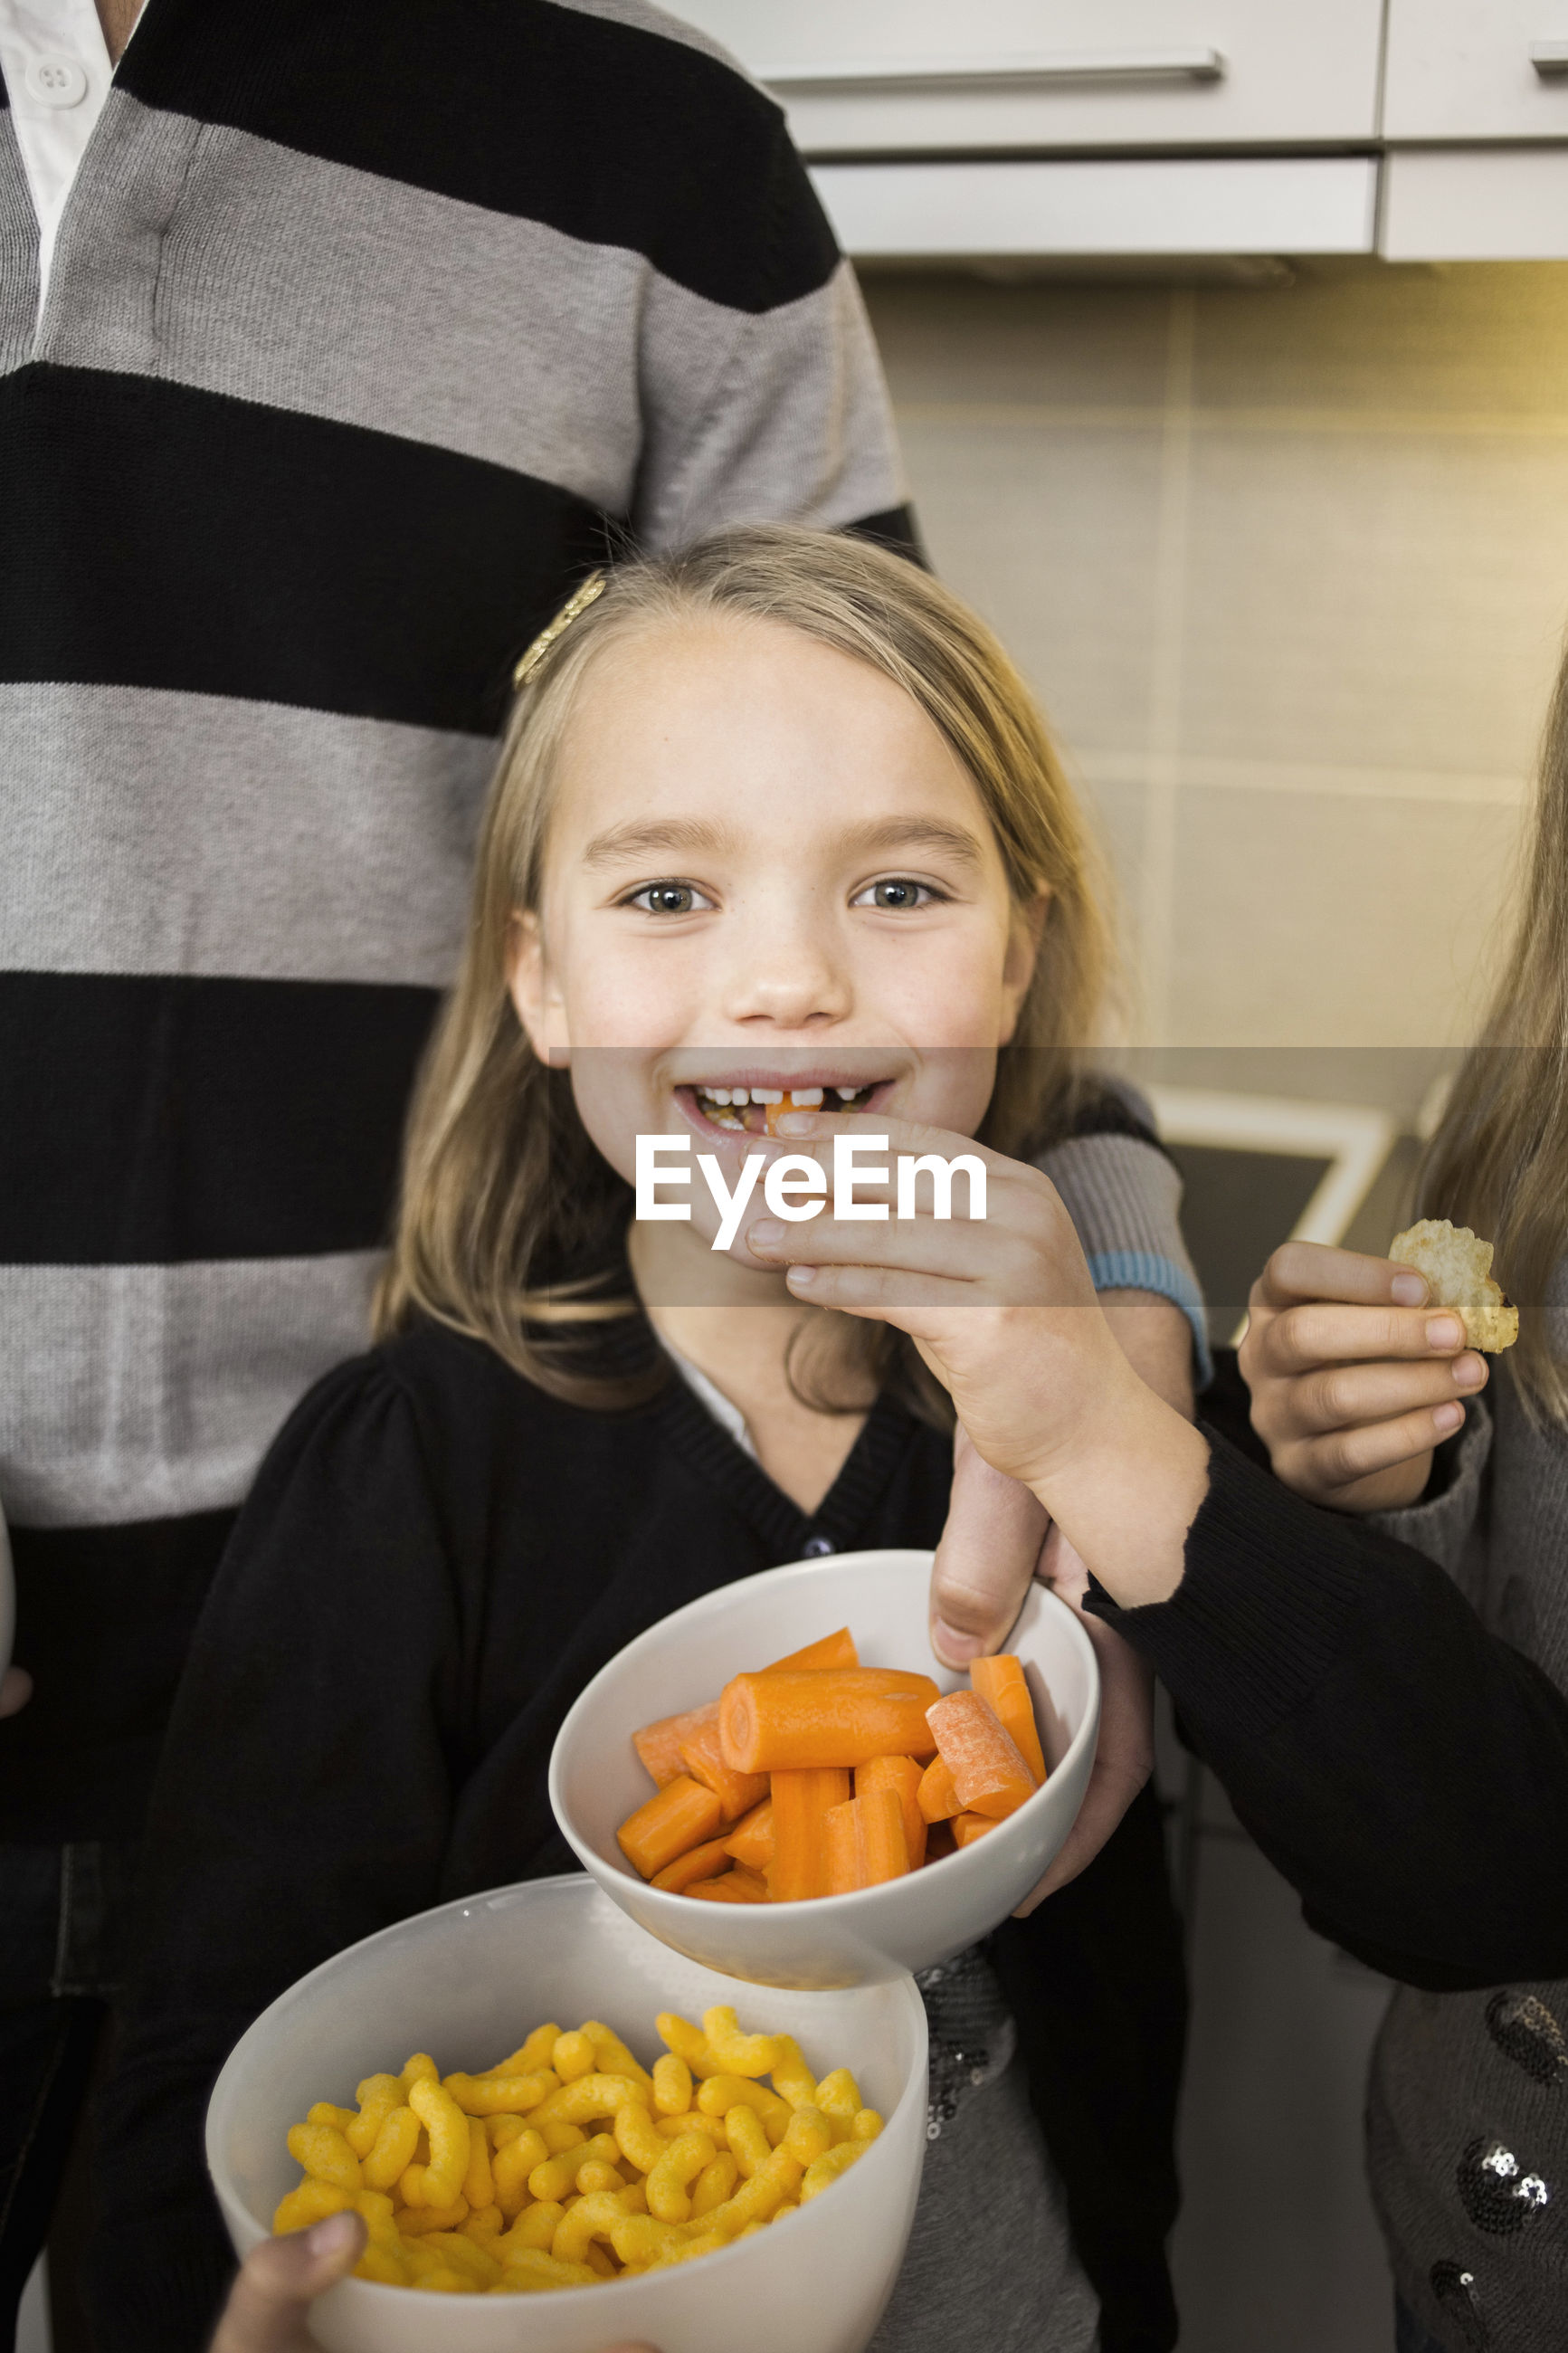 PORTRAIT OF A SMILING GIRL WITH FOOD